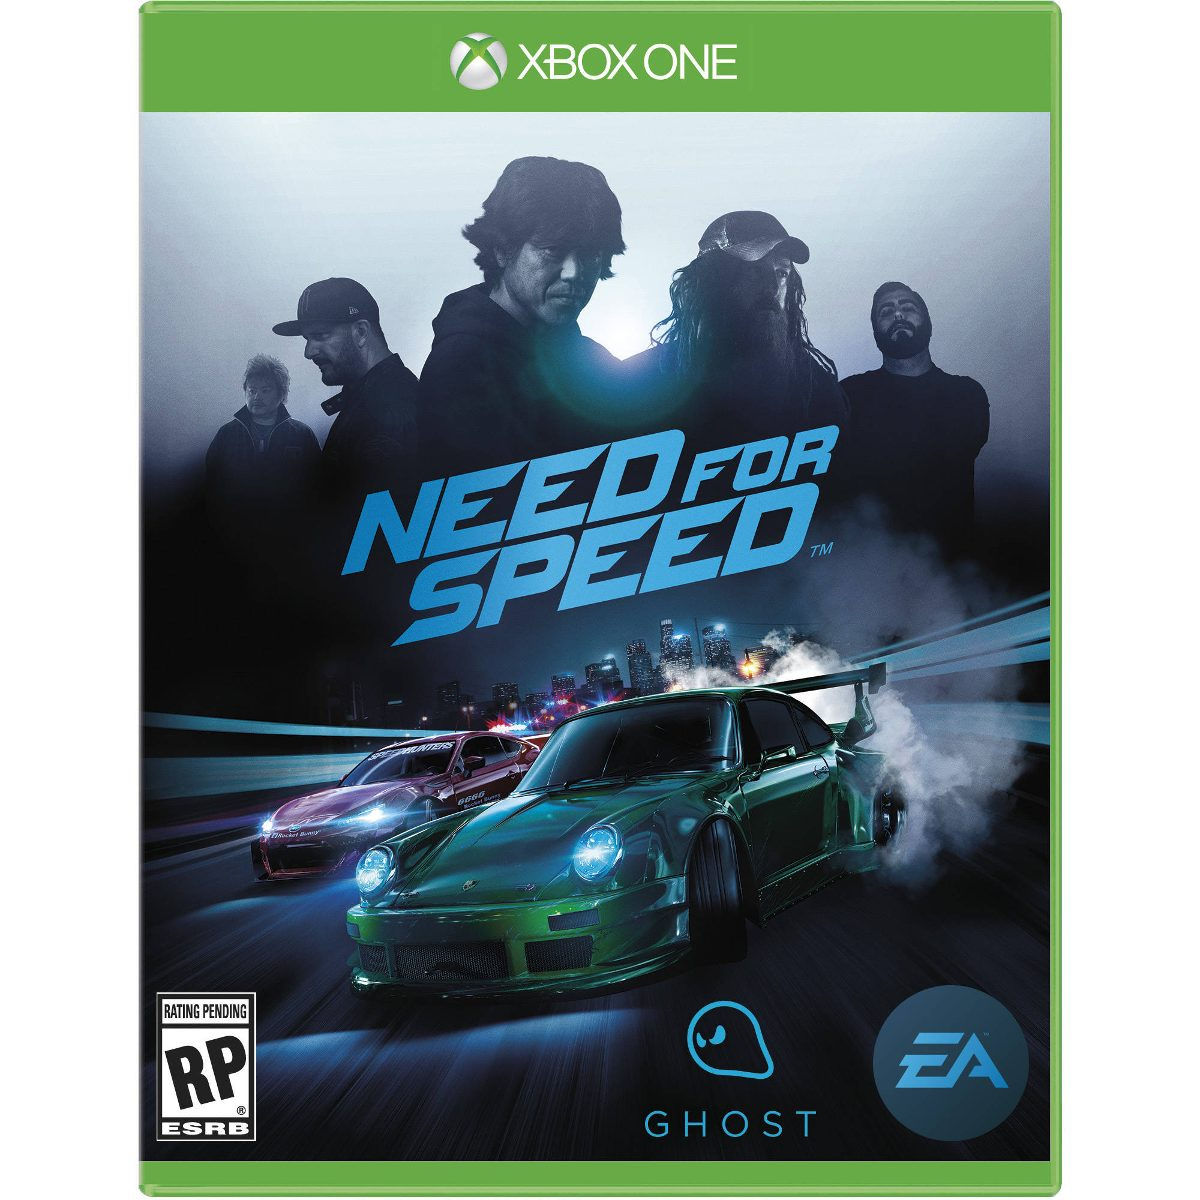 Fisico Y Original Carros Carreras Xbox One Need For Speed 79 001